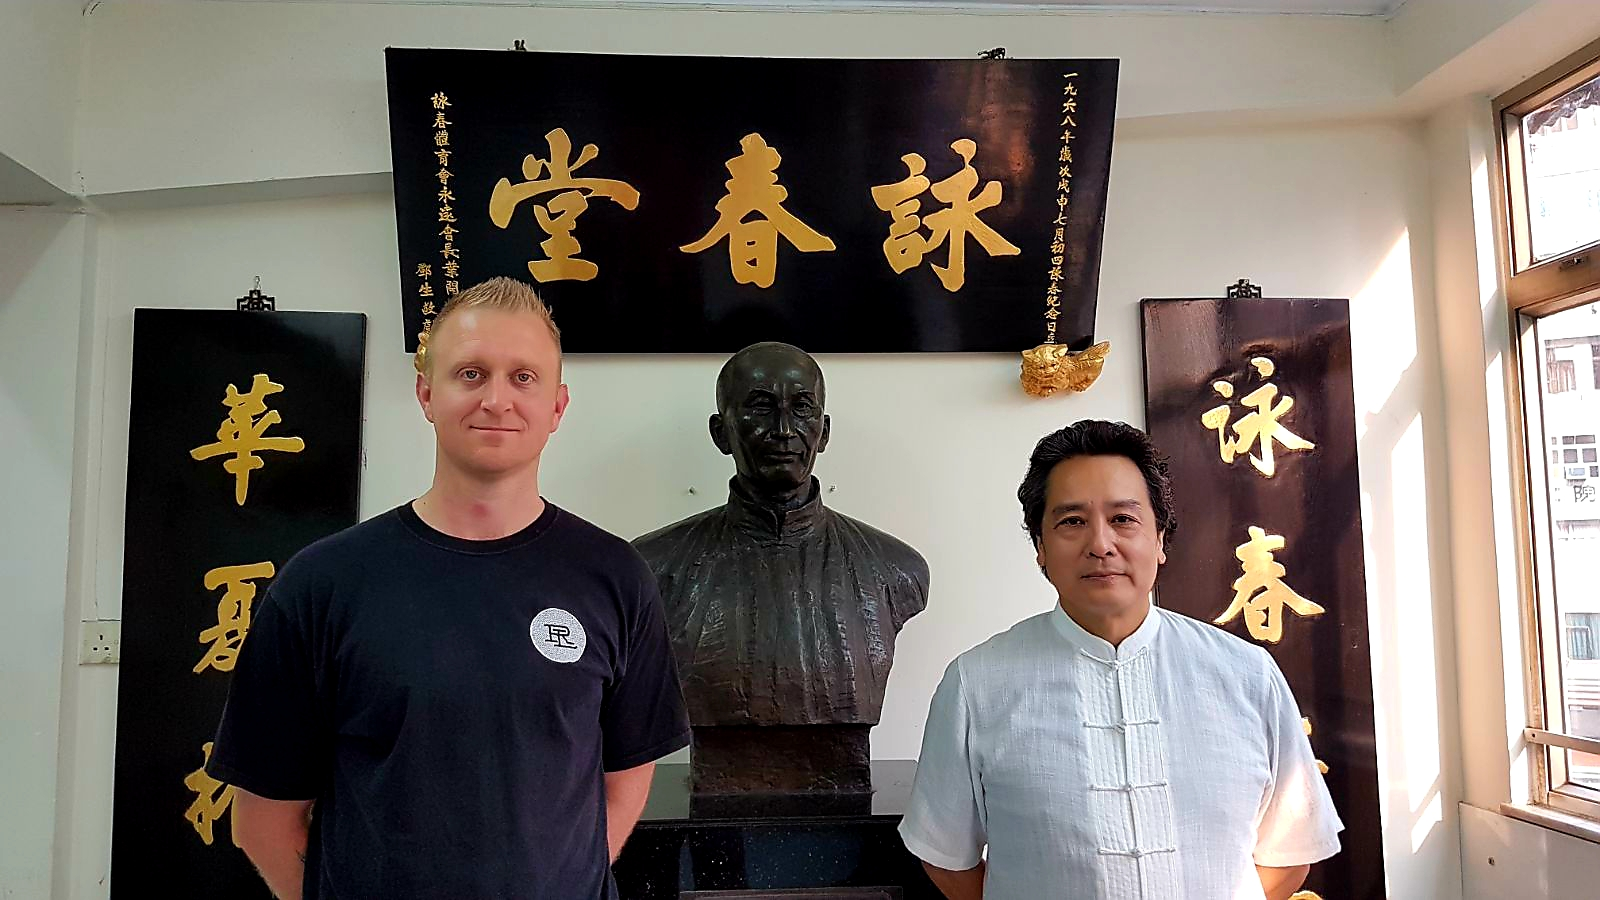 Robert Ley with his Sihing Philip Hoi in the Ving Tsun Athletic Association